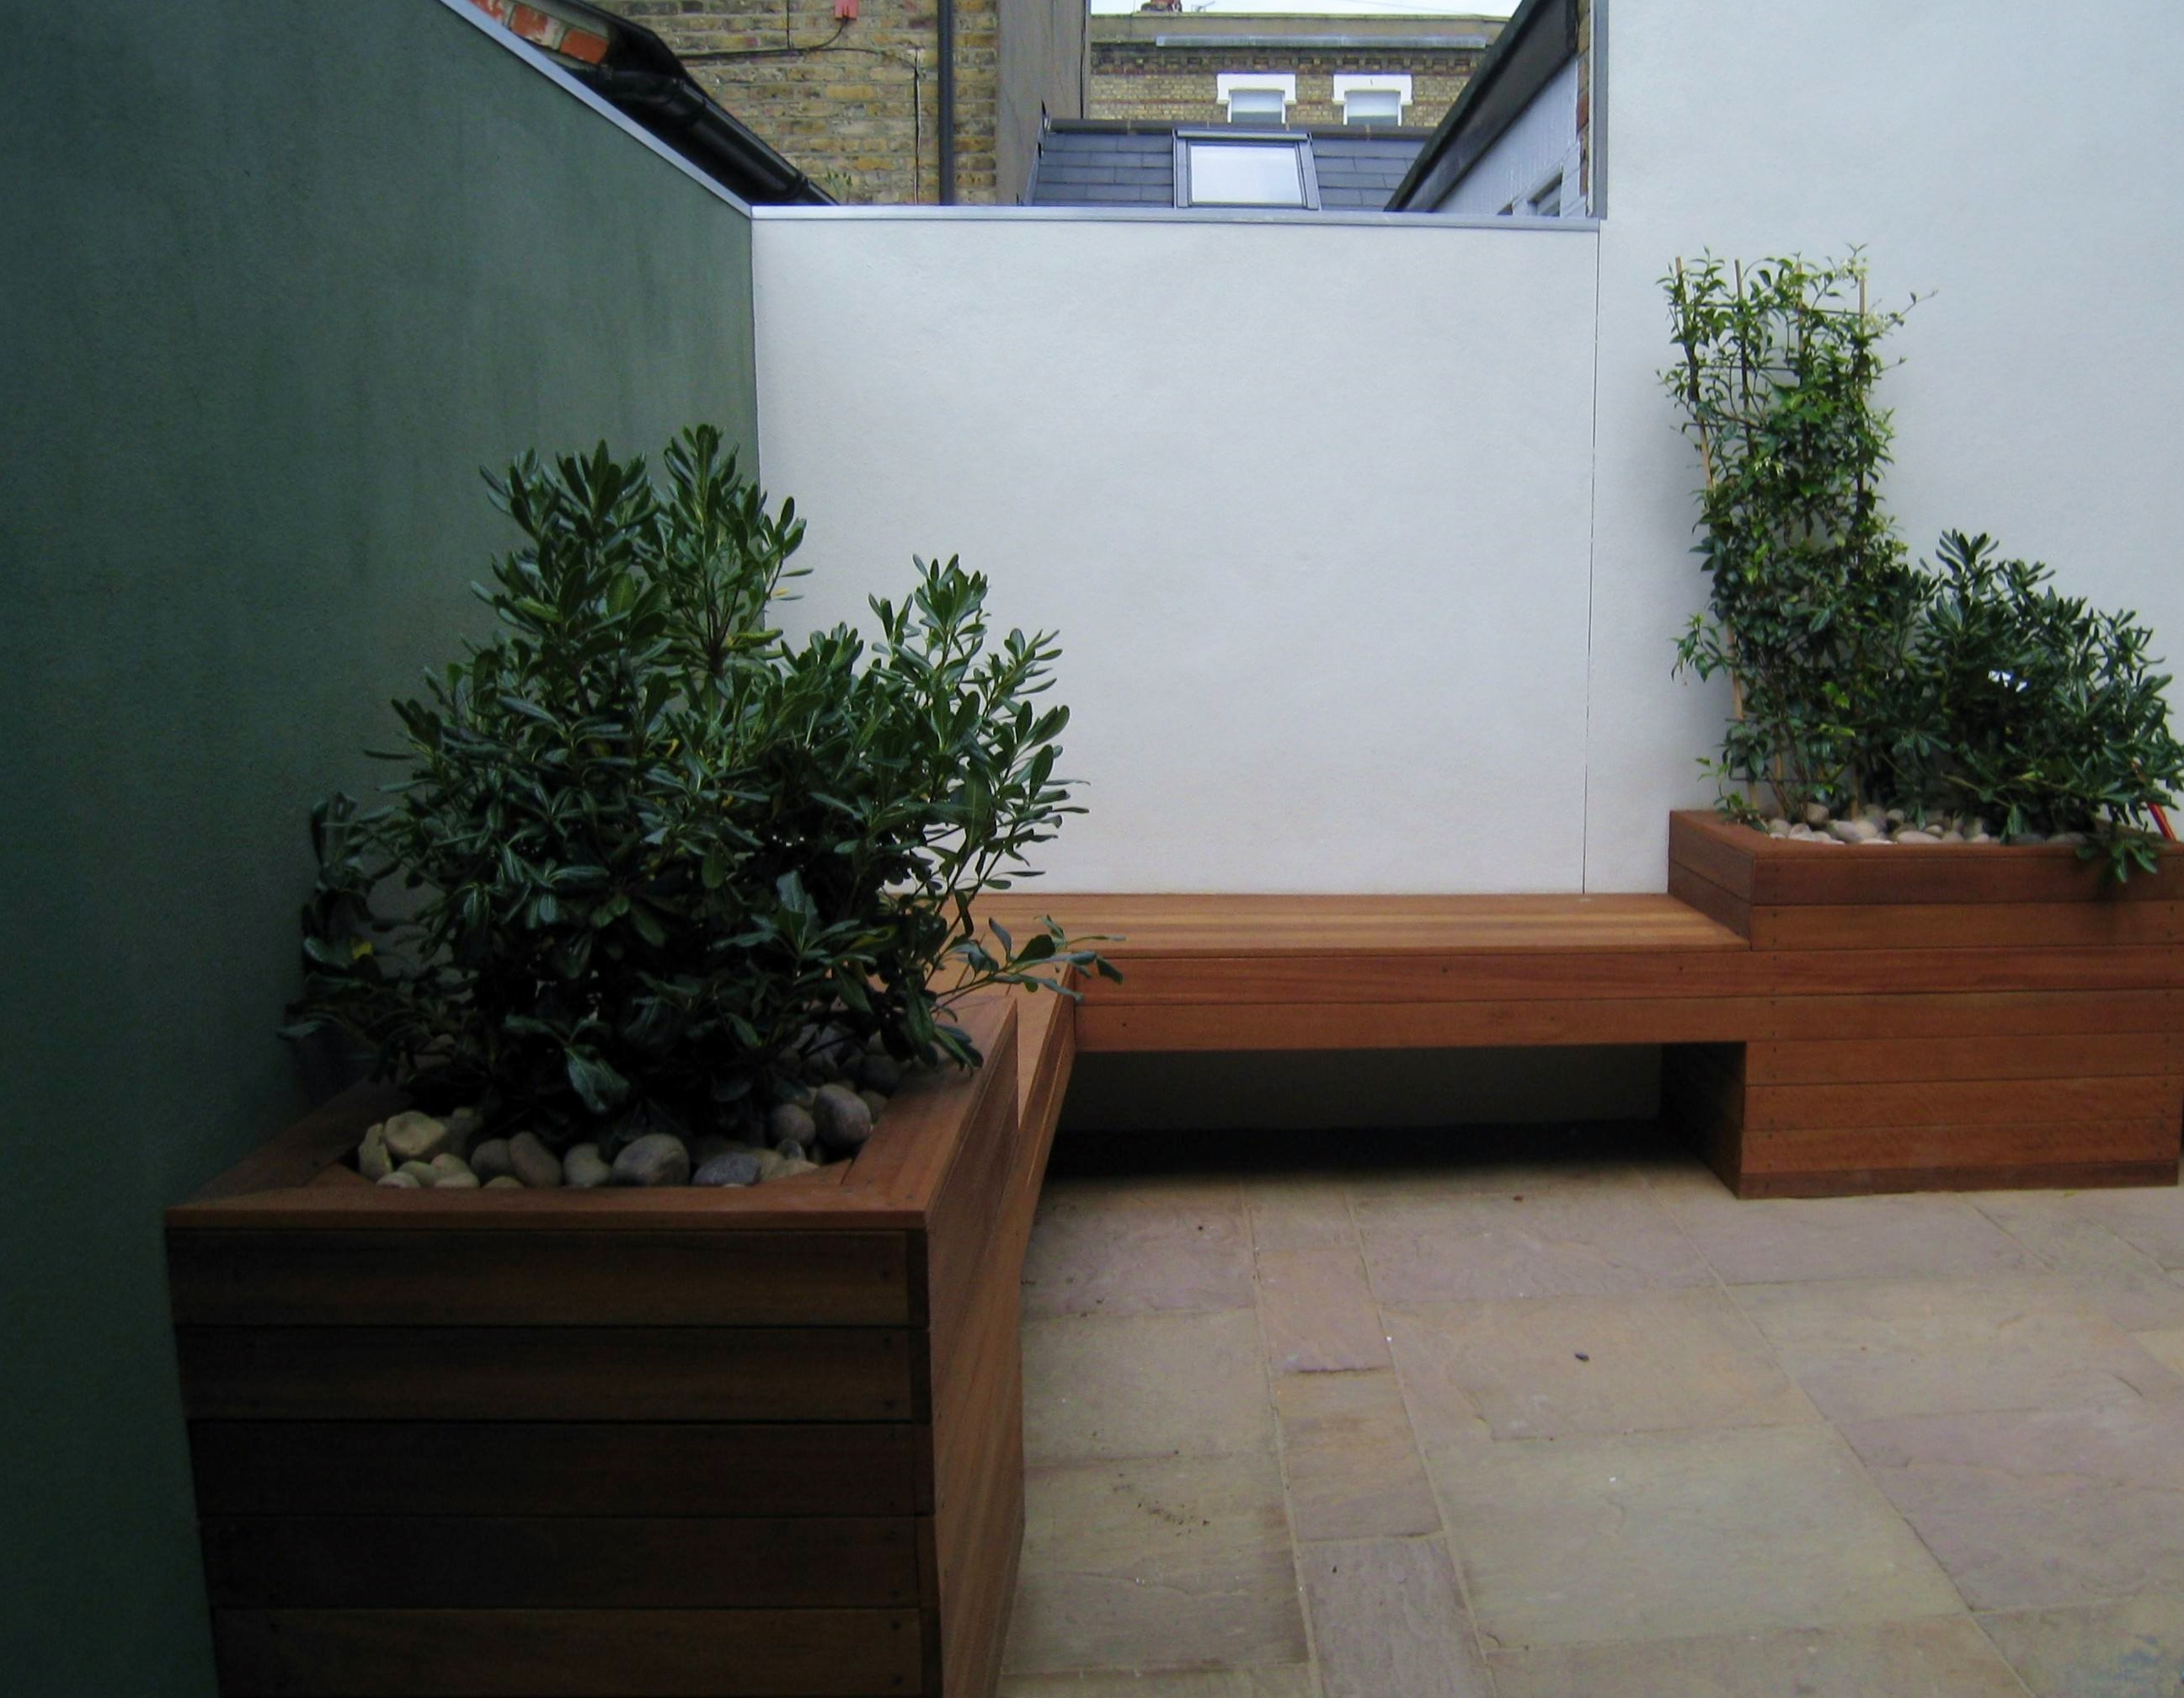 london decking deck builders installers hardwood softwood garden design (23)